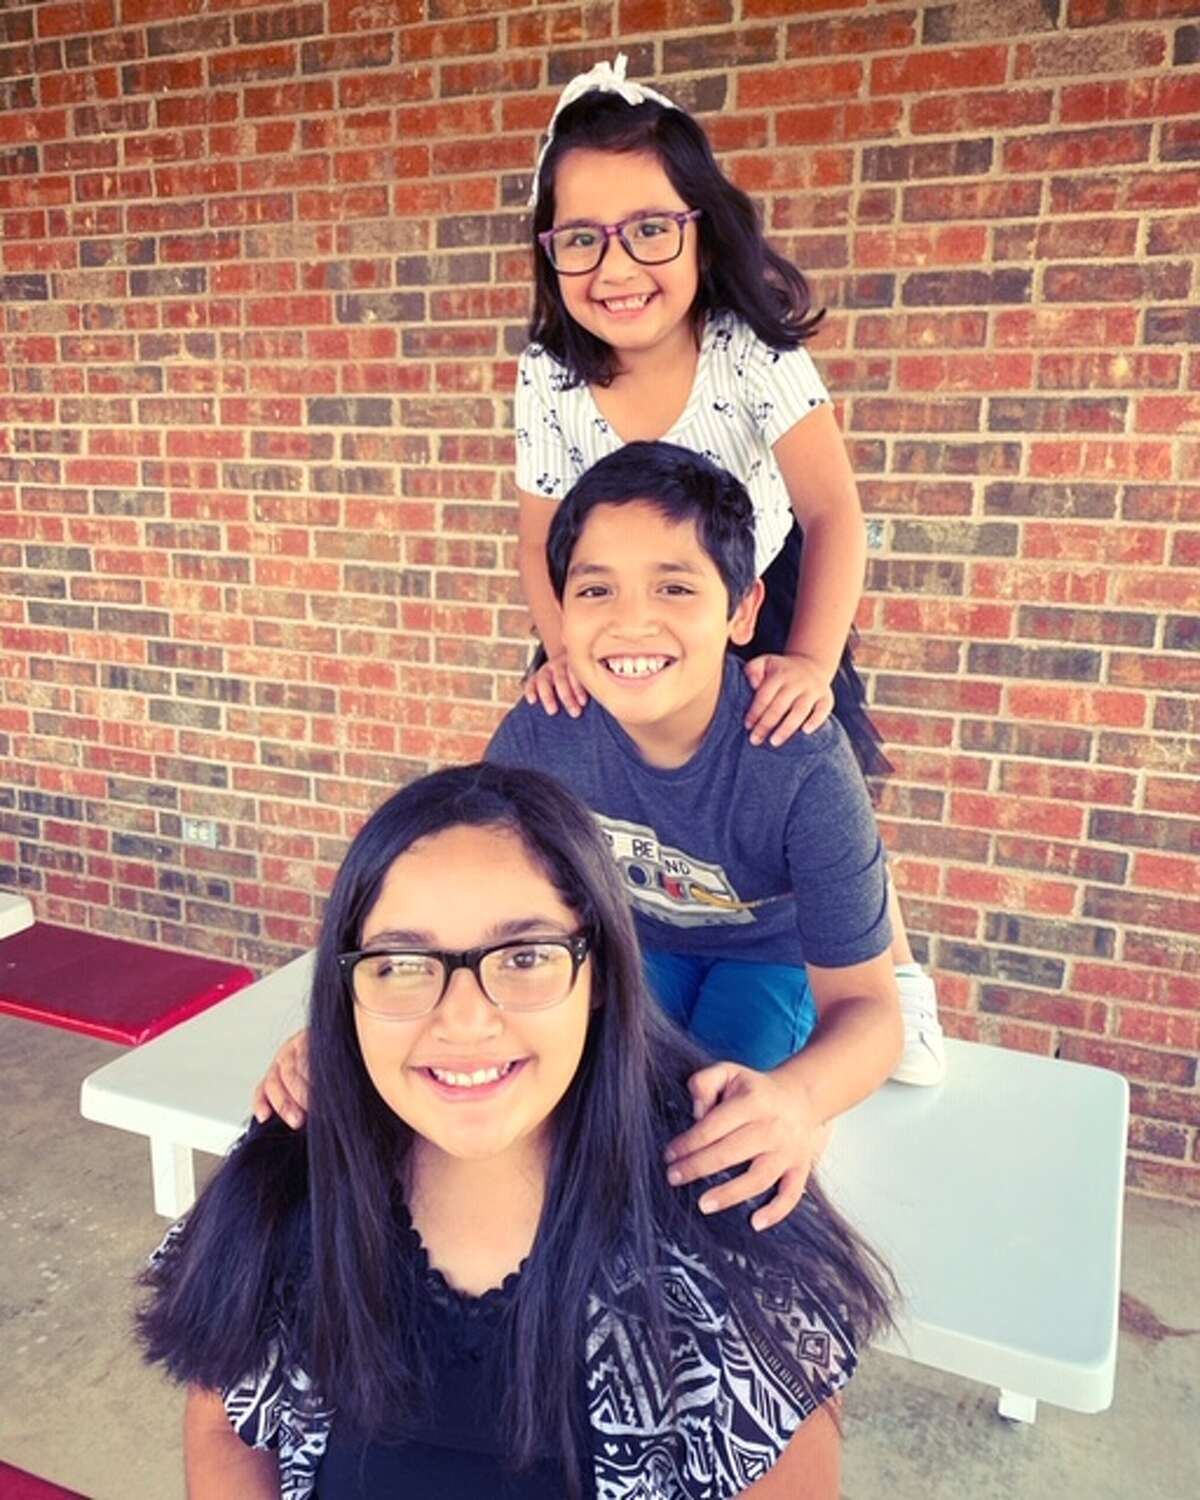 Lizzy, PD and Sylvia are among the children listed on the Texas Adoption Resource Exchange (TARE) website. Visit https://www.dfps.state.tx.us/Application/TARE/Home.aspx/Default for more details.